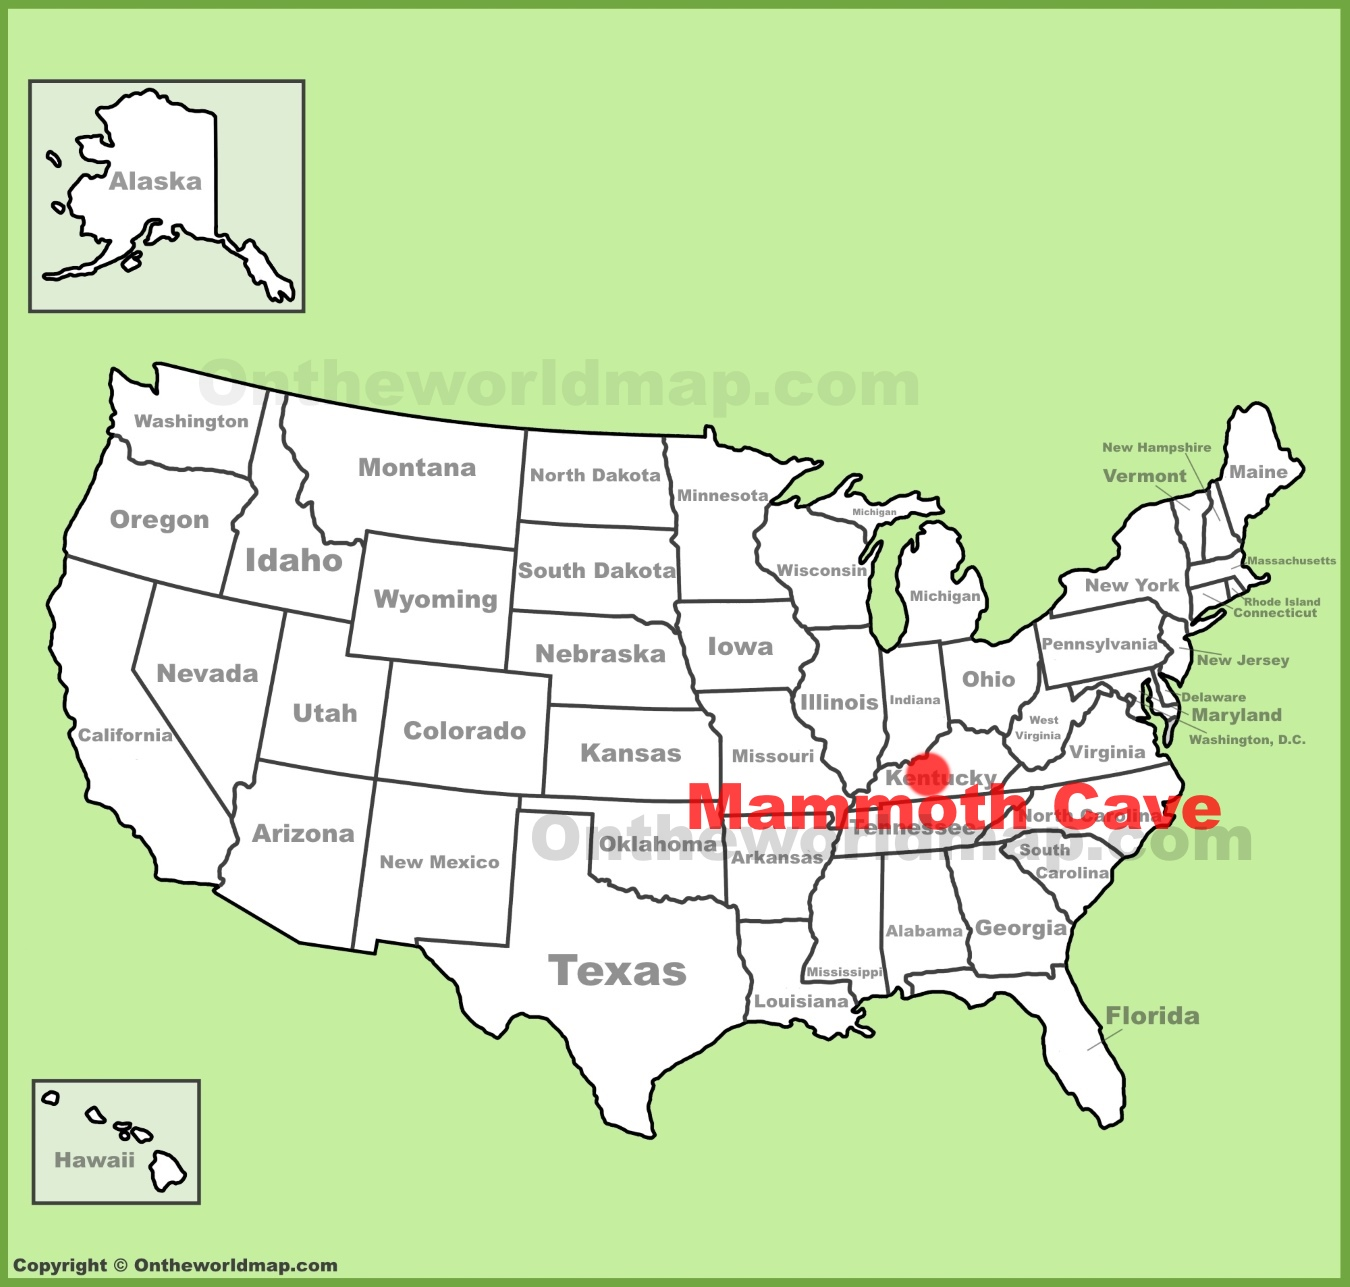 Mammoth Cave Maps USA Maps of Mammoth Cave National Park